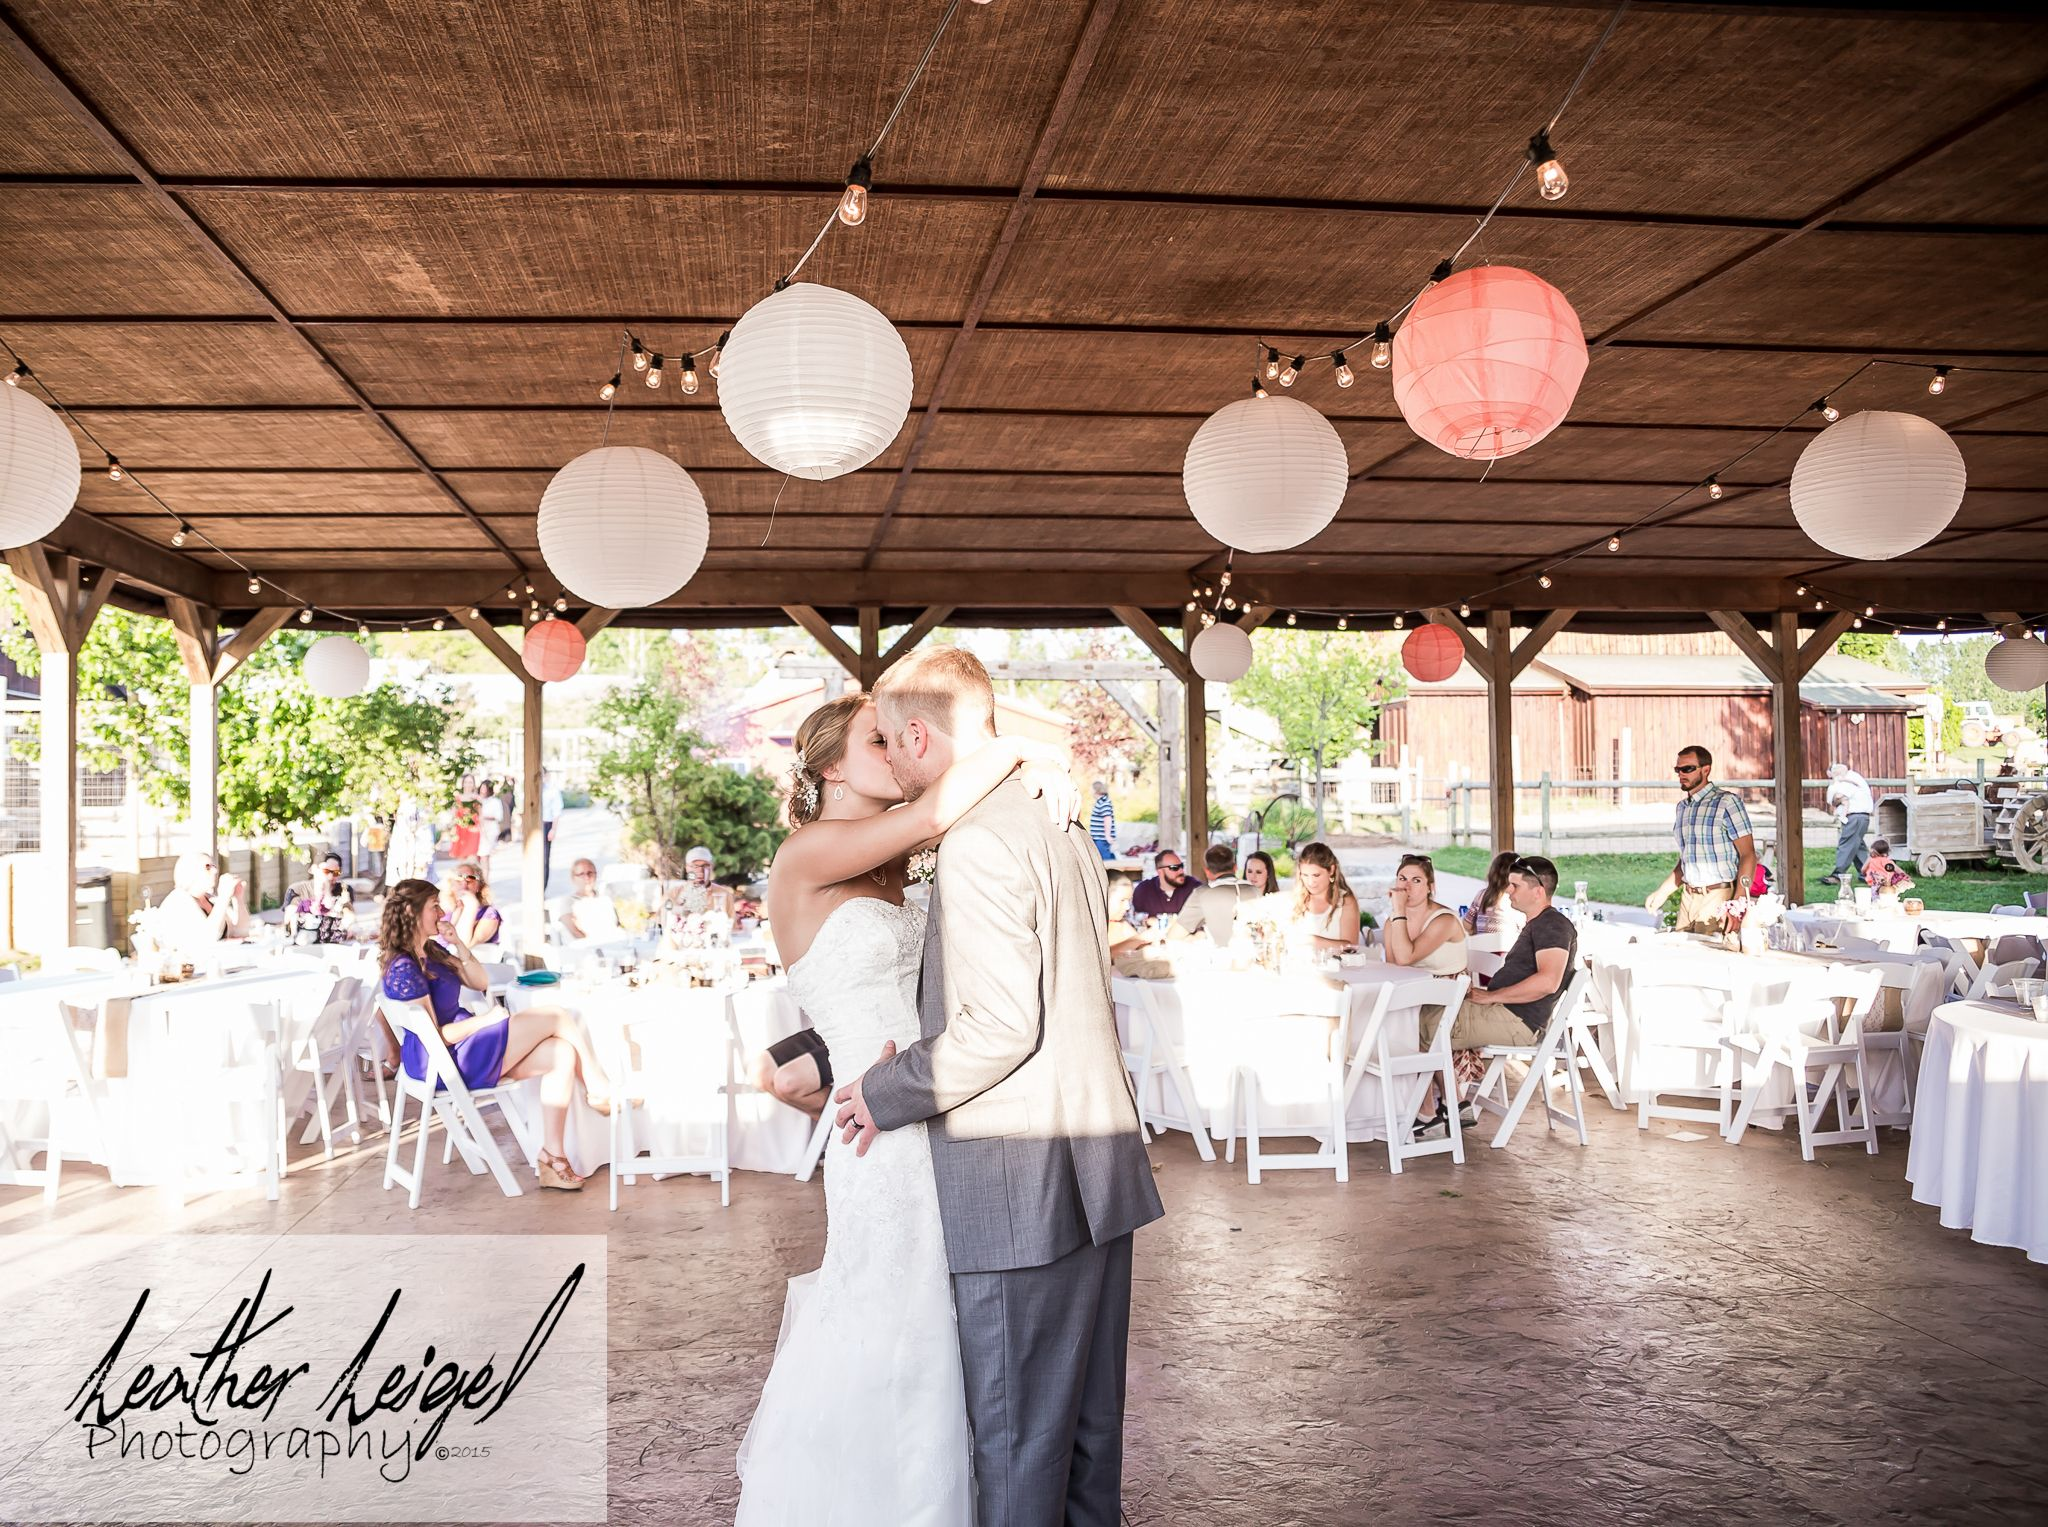 Beautiful Outdoor Wedding And Reception Venue In West Michigan